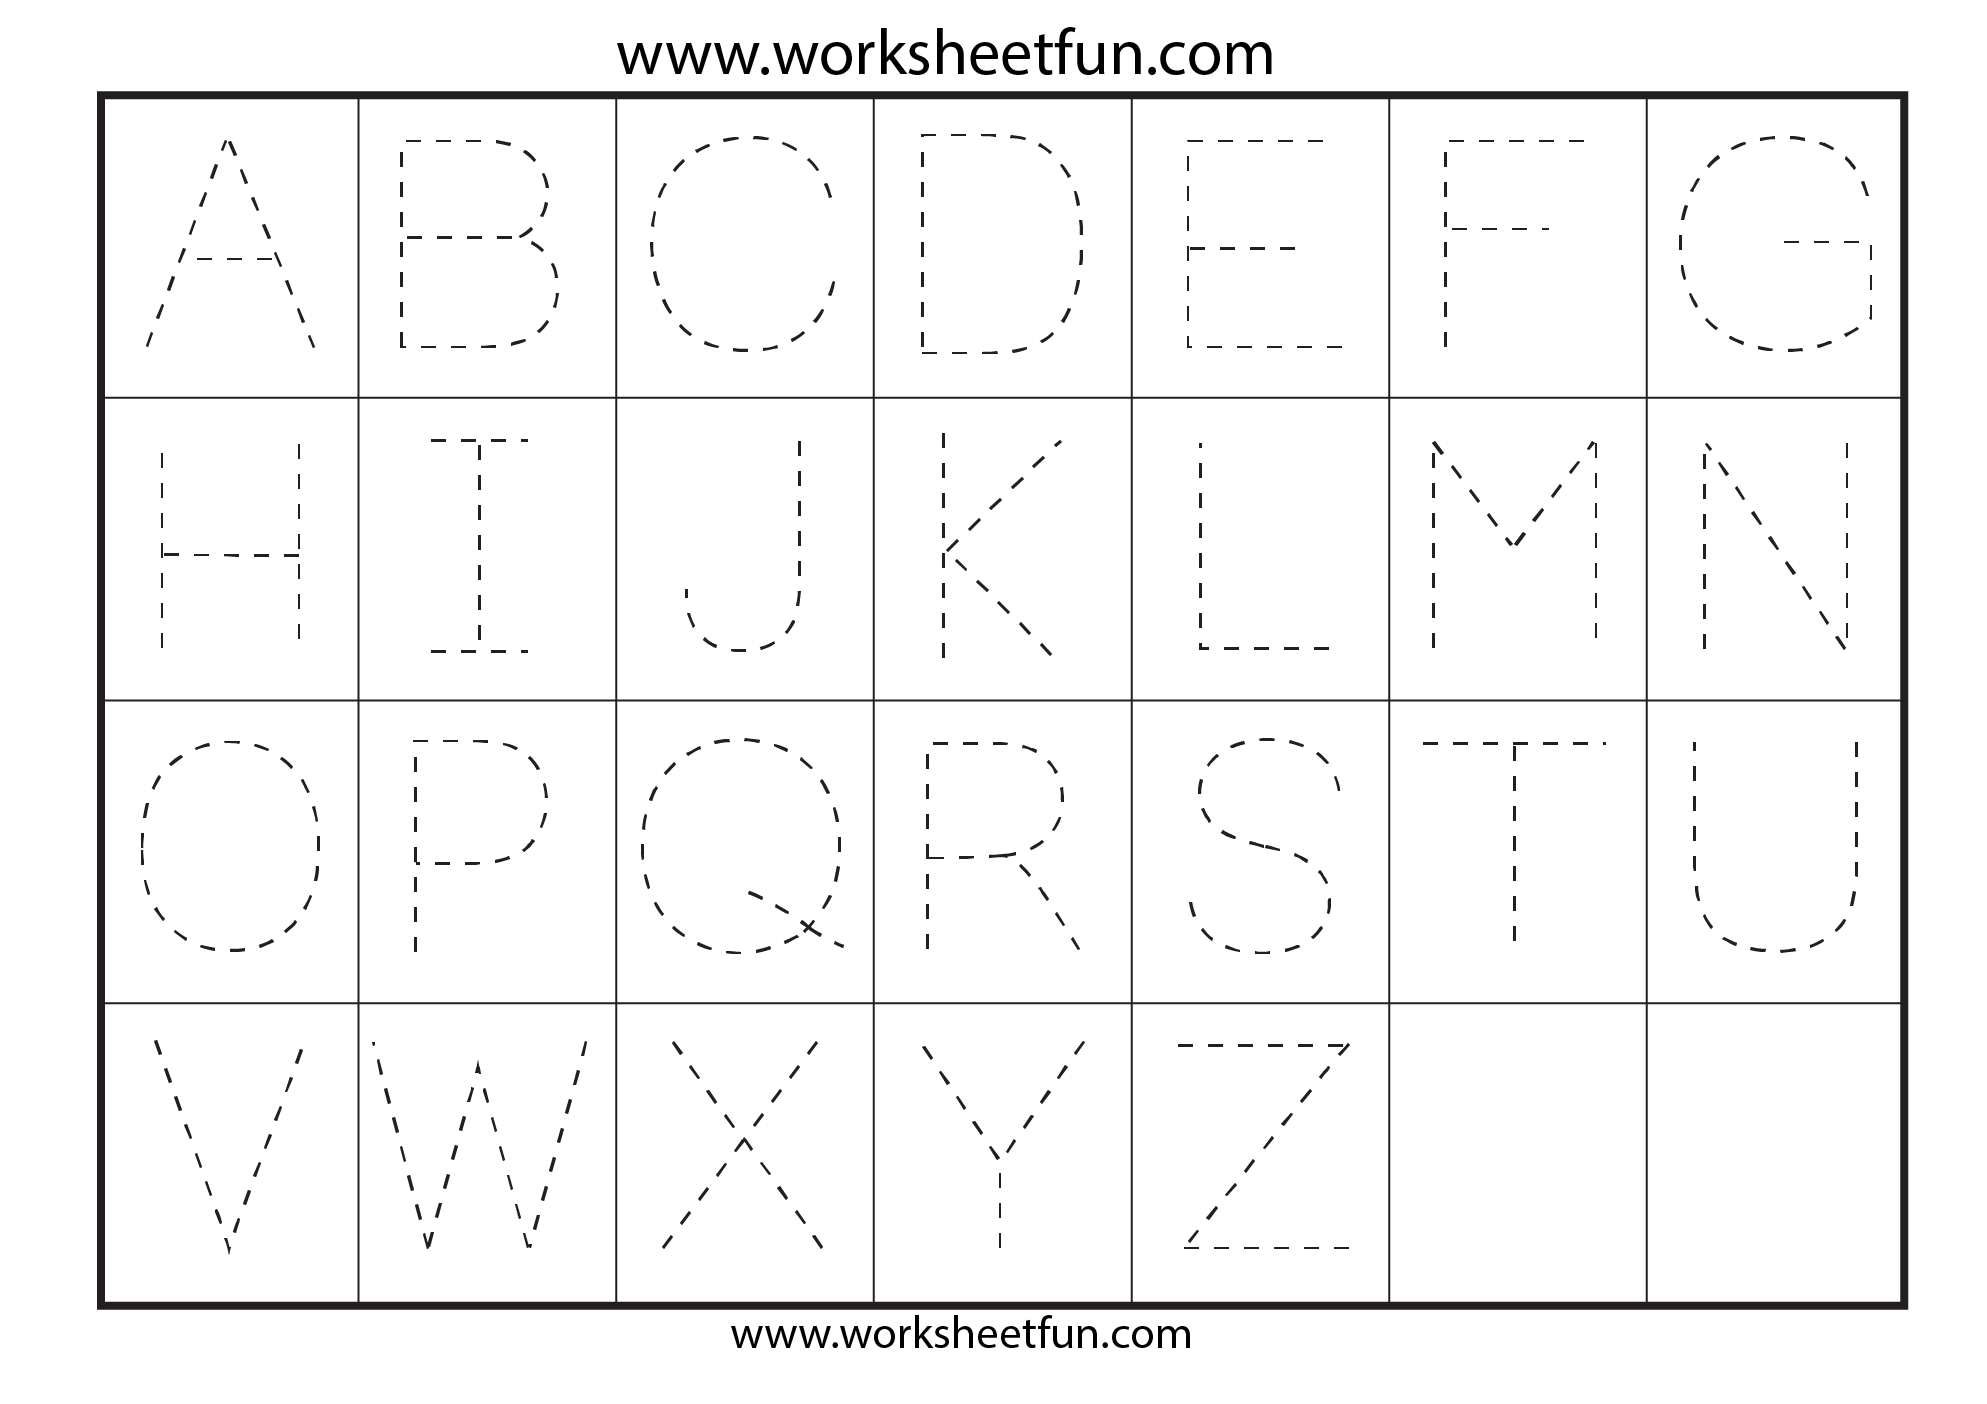 Free Traceable Alphabet Worksheets For Preschoolers - Synhoff